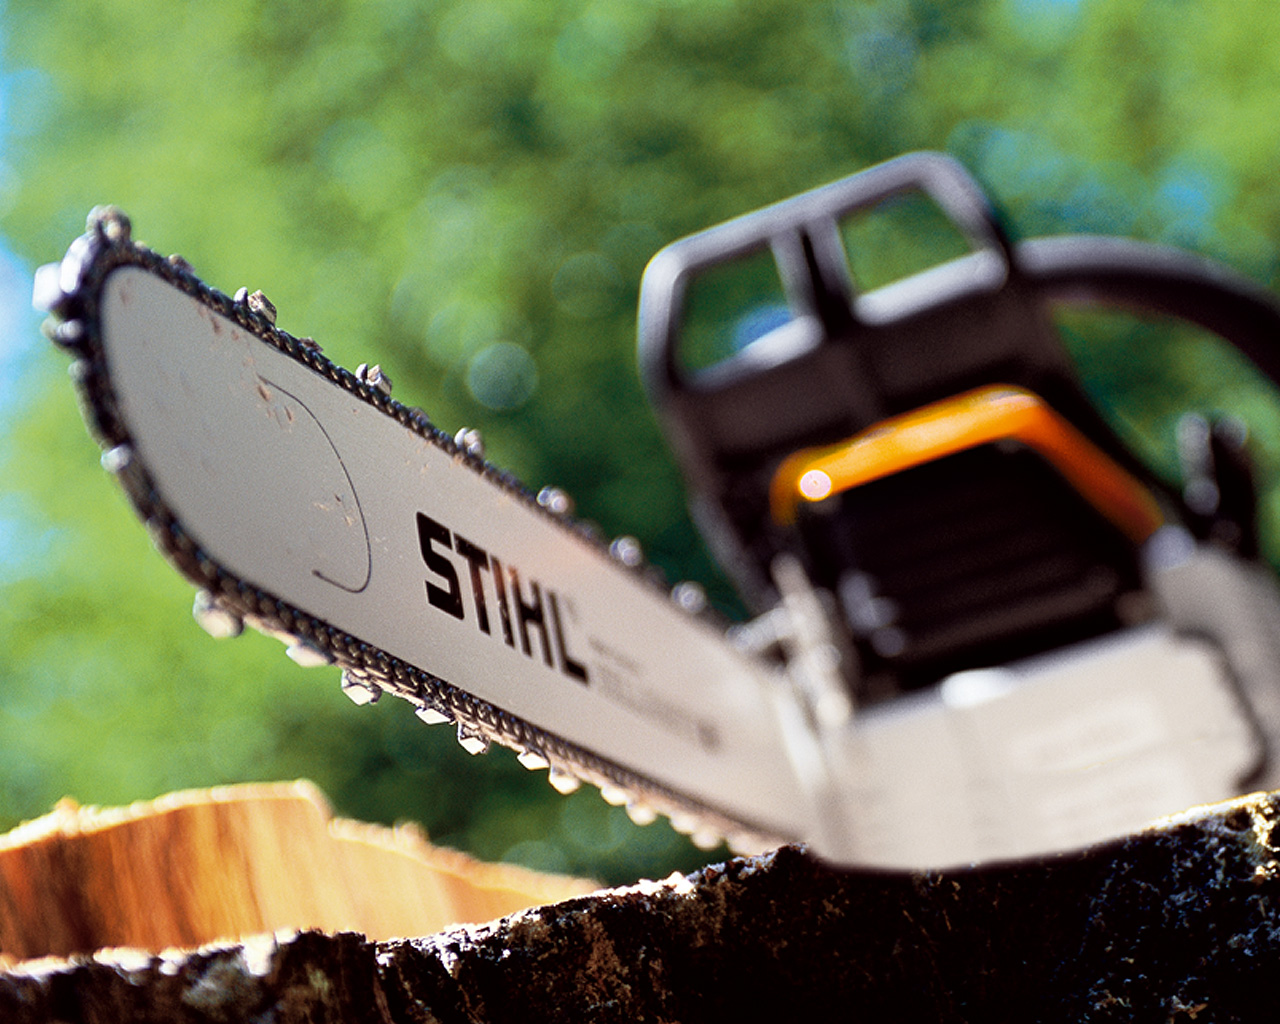 44] Stihl Wallpaper Backgrounds in HD on WallpaperSafari 1280x1024